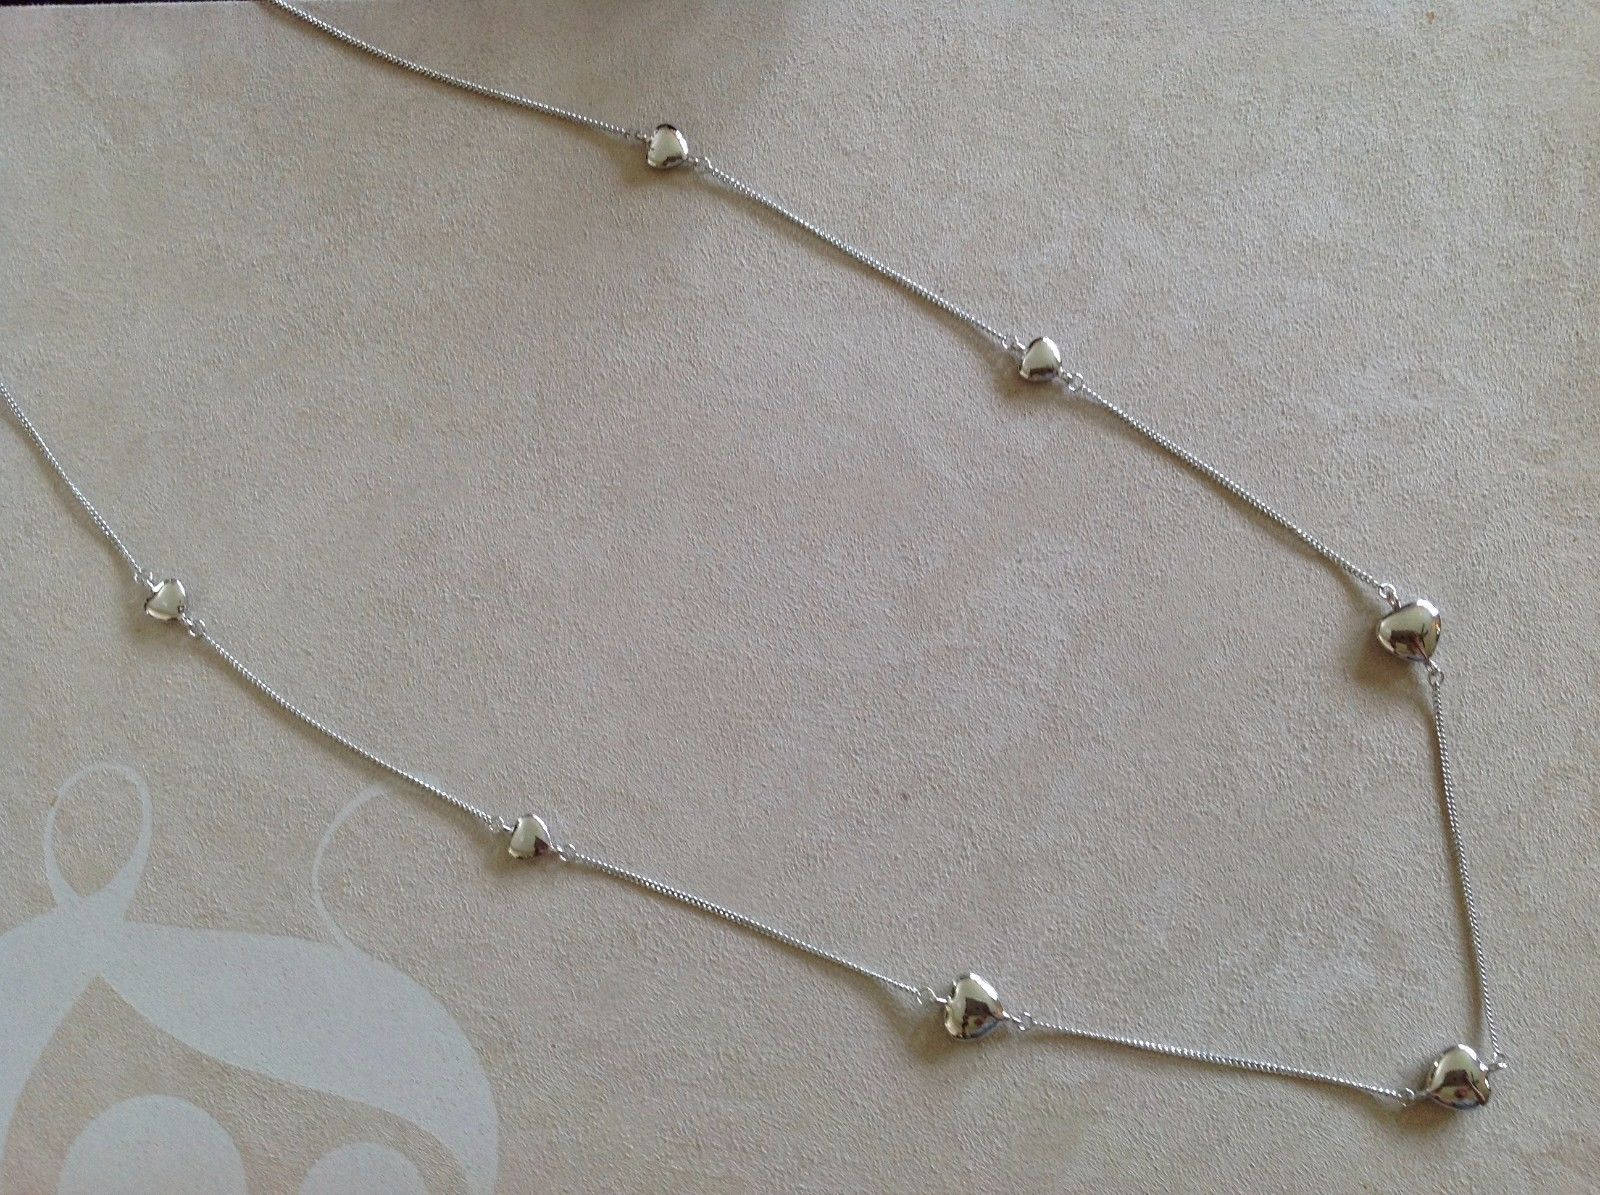 New Allure Necklace Silver Toned Chain Strung With Hearts